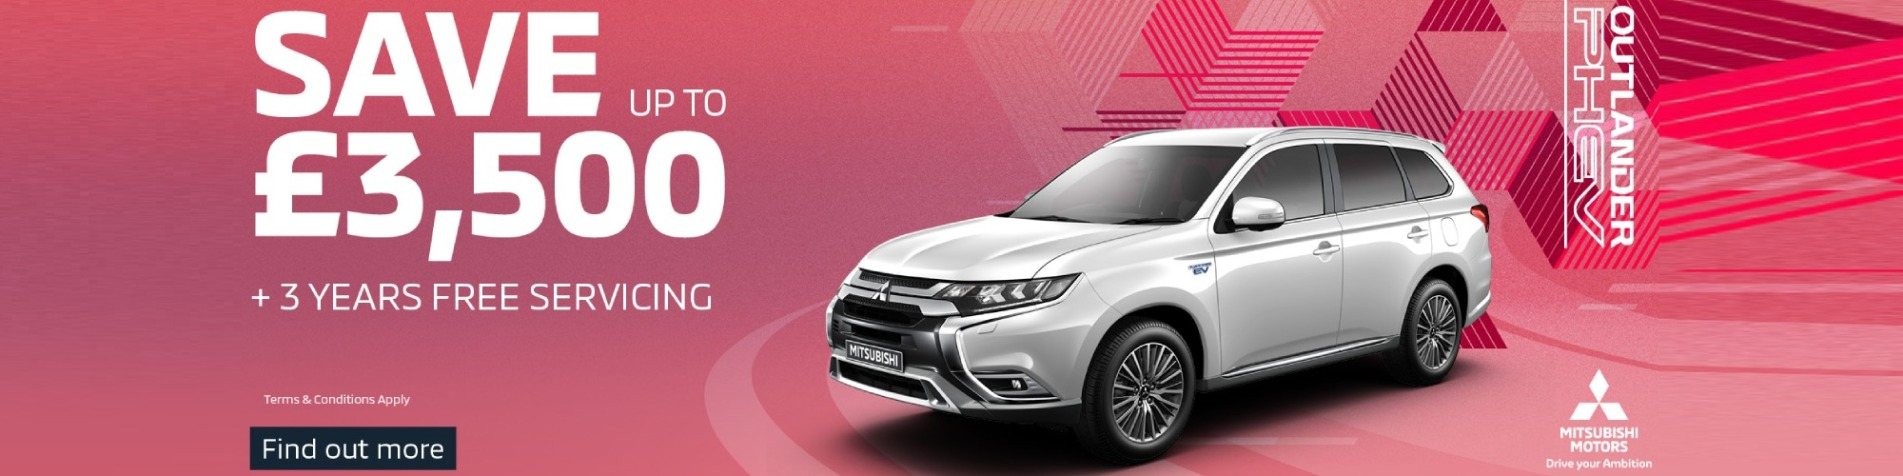 Outlander PHEV Save £3500